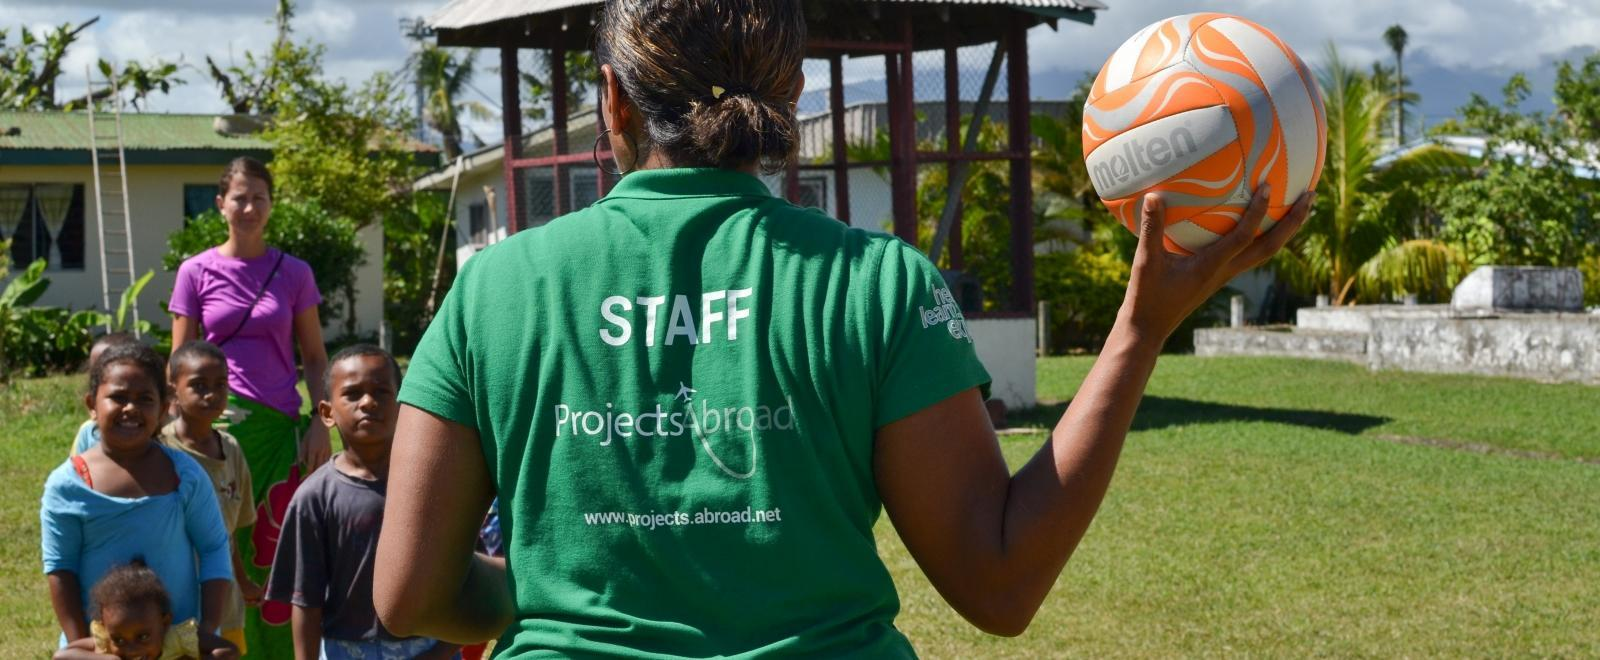 A local Projects Abroad staff member is taking care of the safety of the volunteers and kids in Fiji.